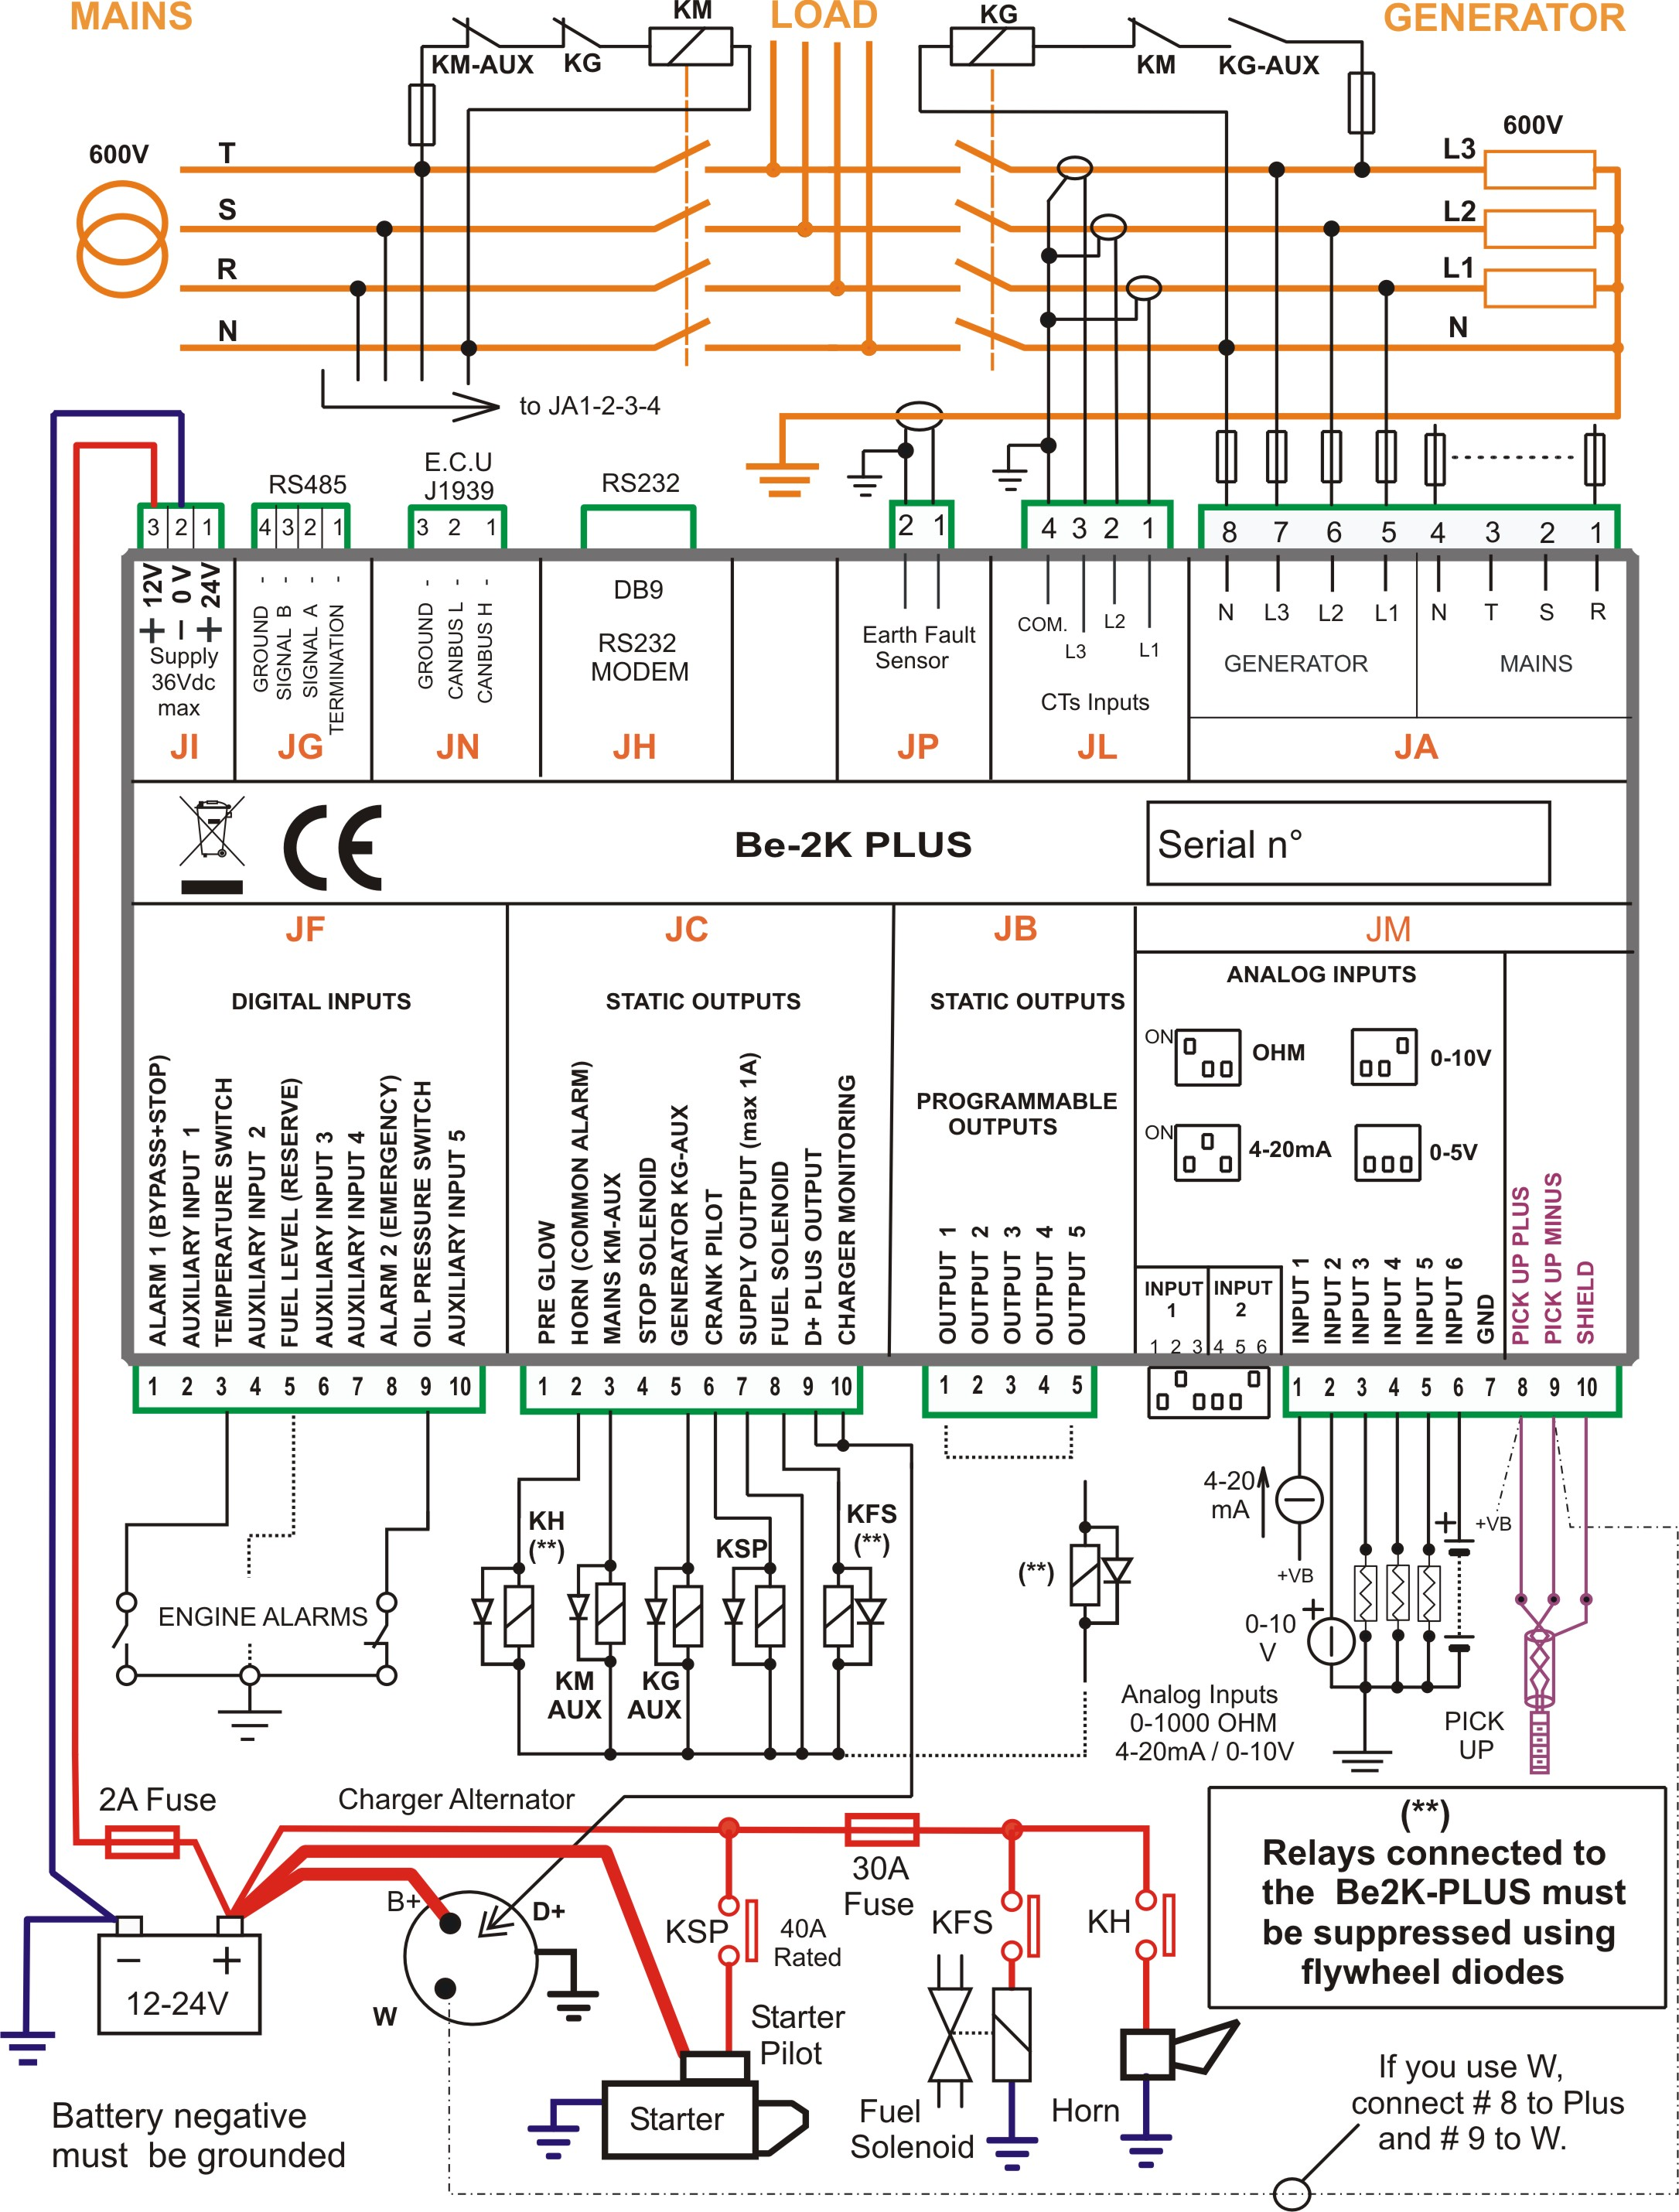 lt panel control wiring diagram